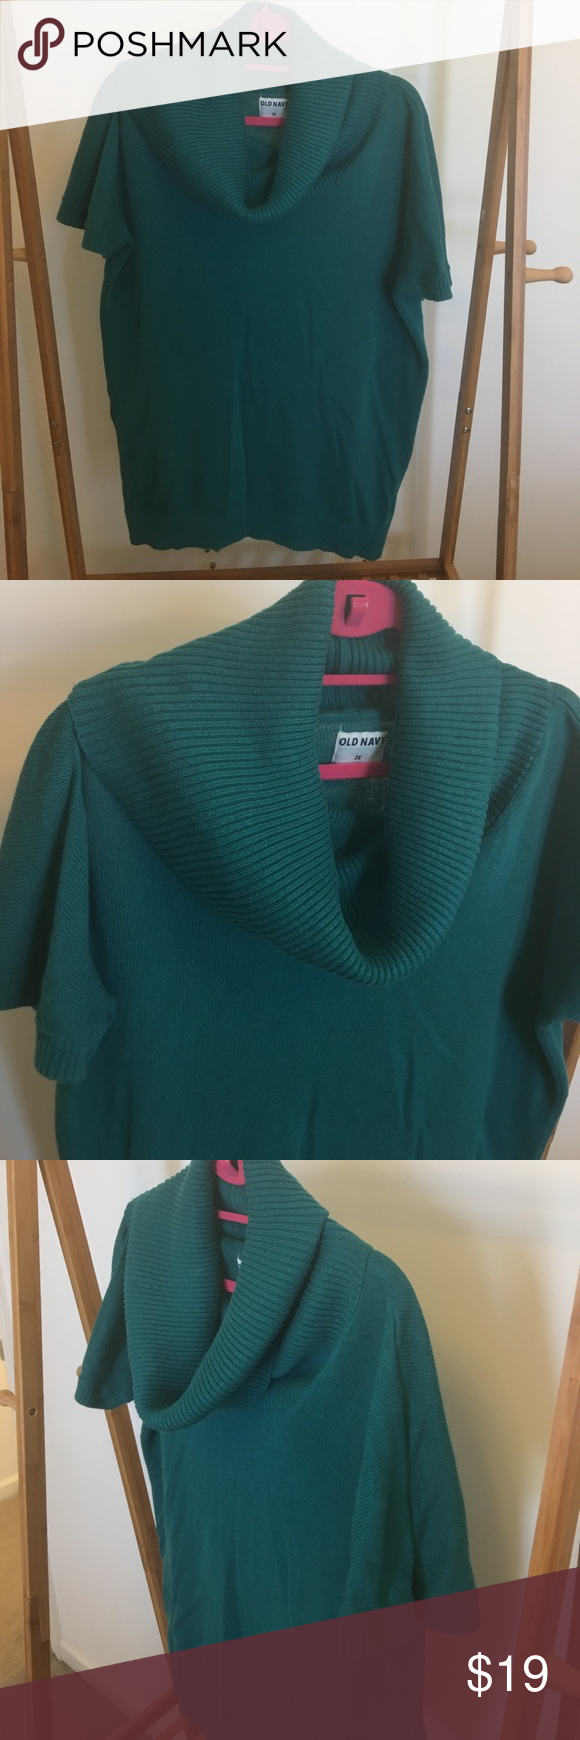 Old Navy Women's Plus Cowl Neck Sweater, 2X | Cowl neck, Teal blue ...